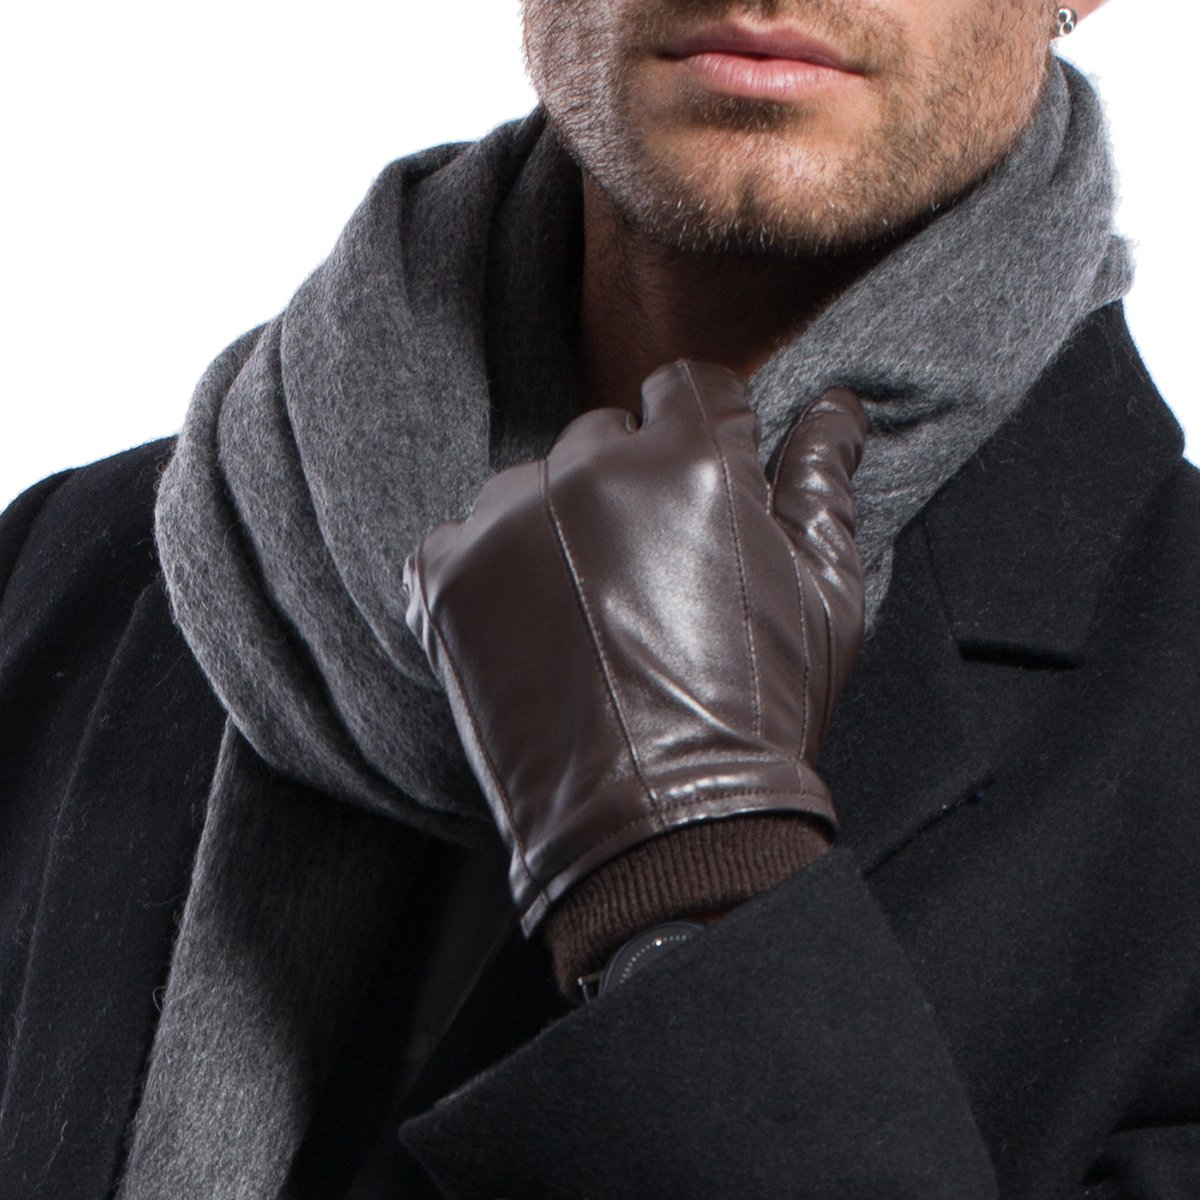 MATSU Men Winter Warm Lambskin Leather with Cuffs Gloves M2002 (xl, Black-TouchScreen)